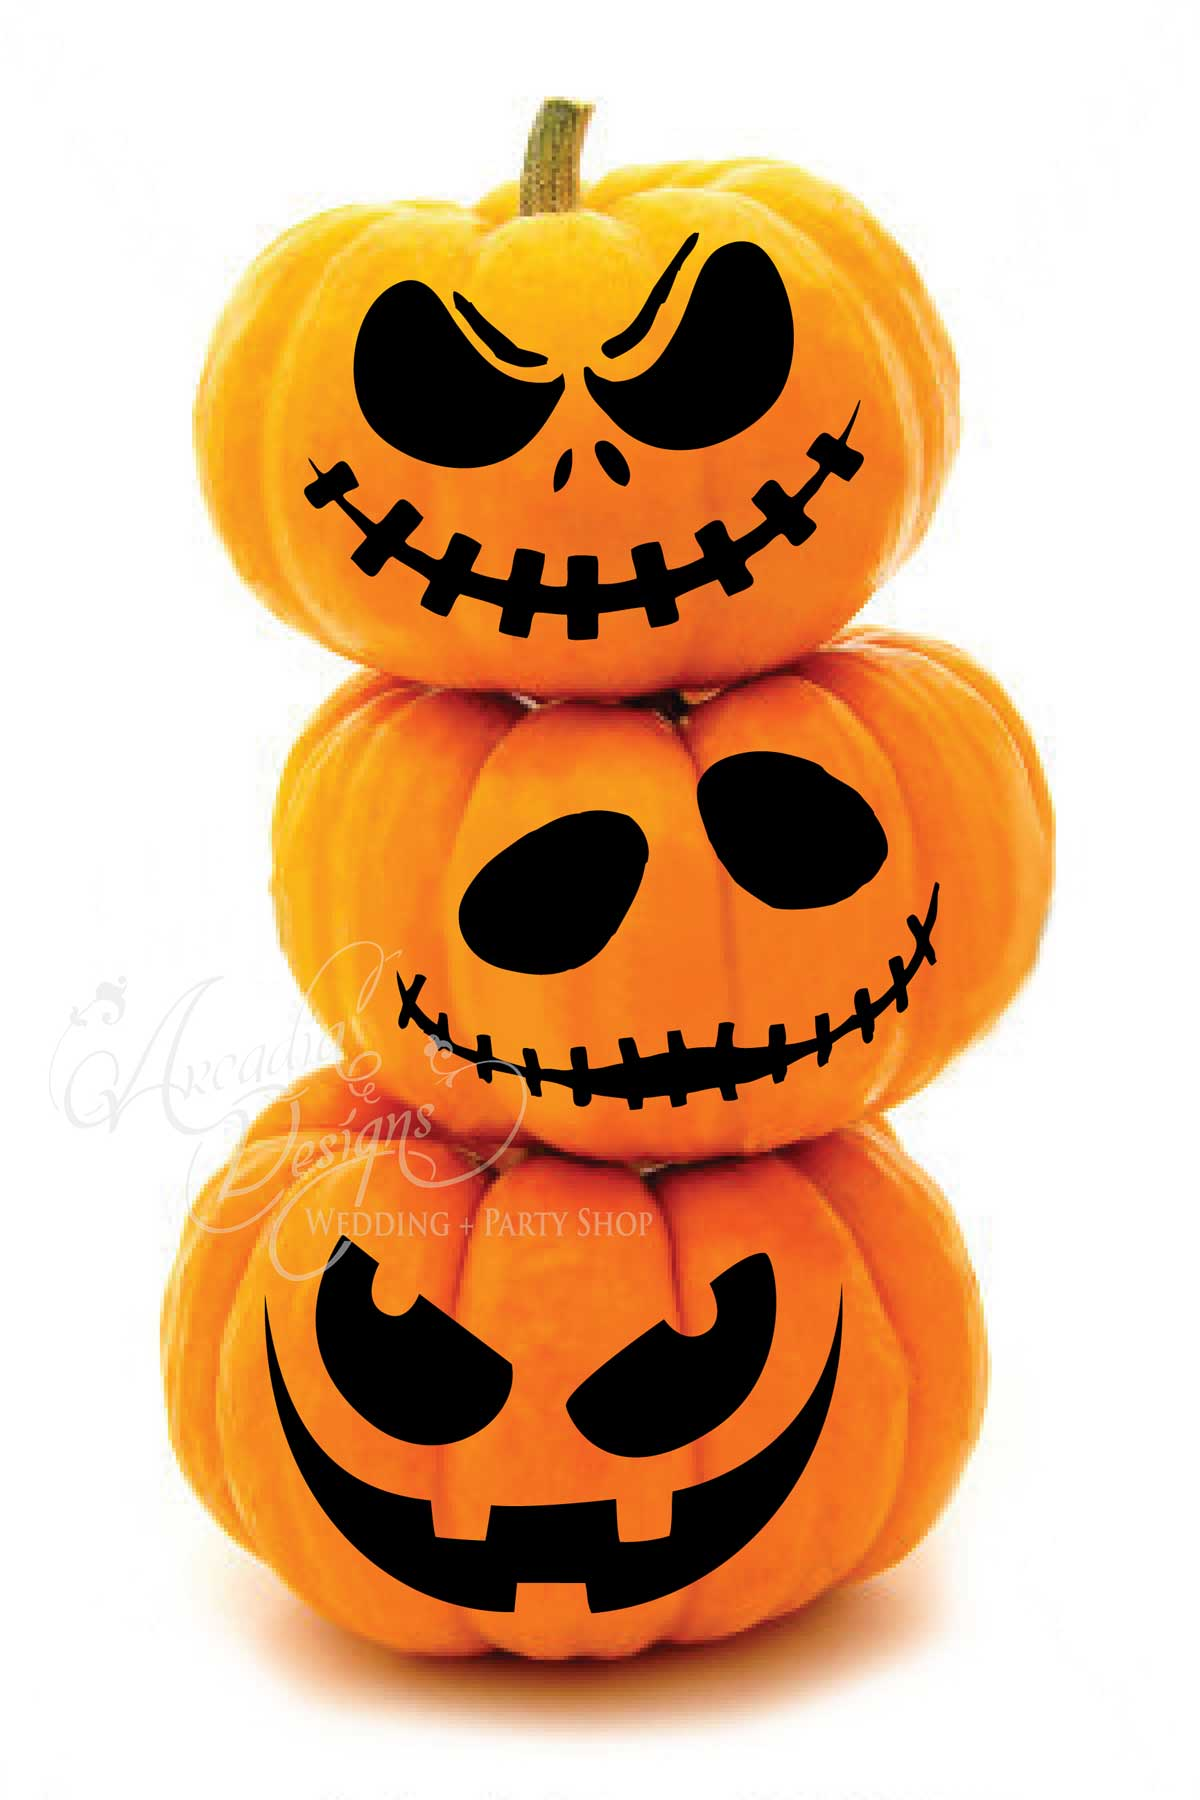 Arcadia Designs Halloween Scary Jack O Lantern Face Pumpkin Carving Pattern